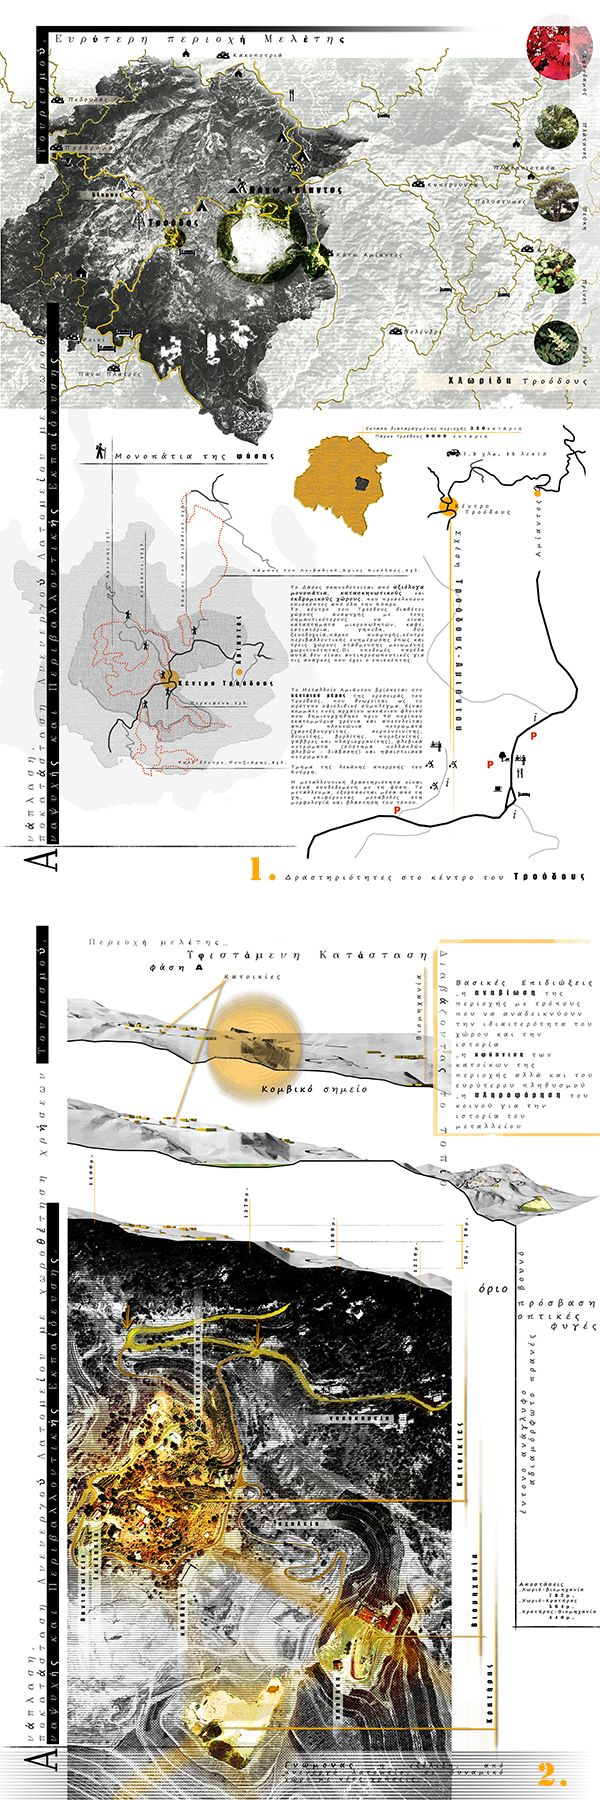 Articles - STUDENTS PROJECTS - DESIGN PROJECTS - PROJECTS2013 - Reformation and rehabilitation of an inactive quarry, with spatial location of uses for Tourism, Recreation and Environmental Education